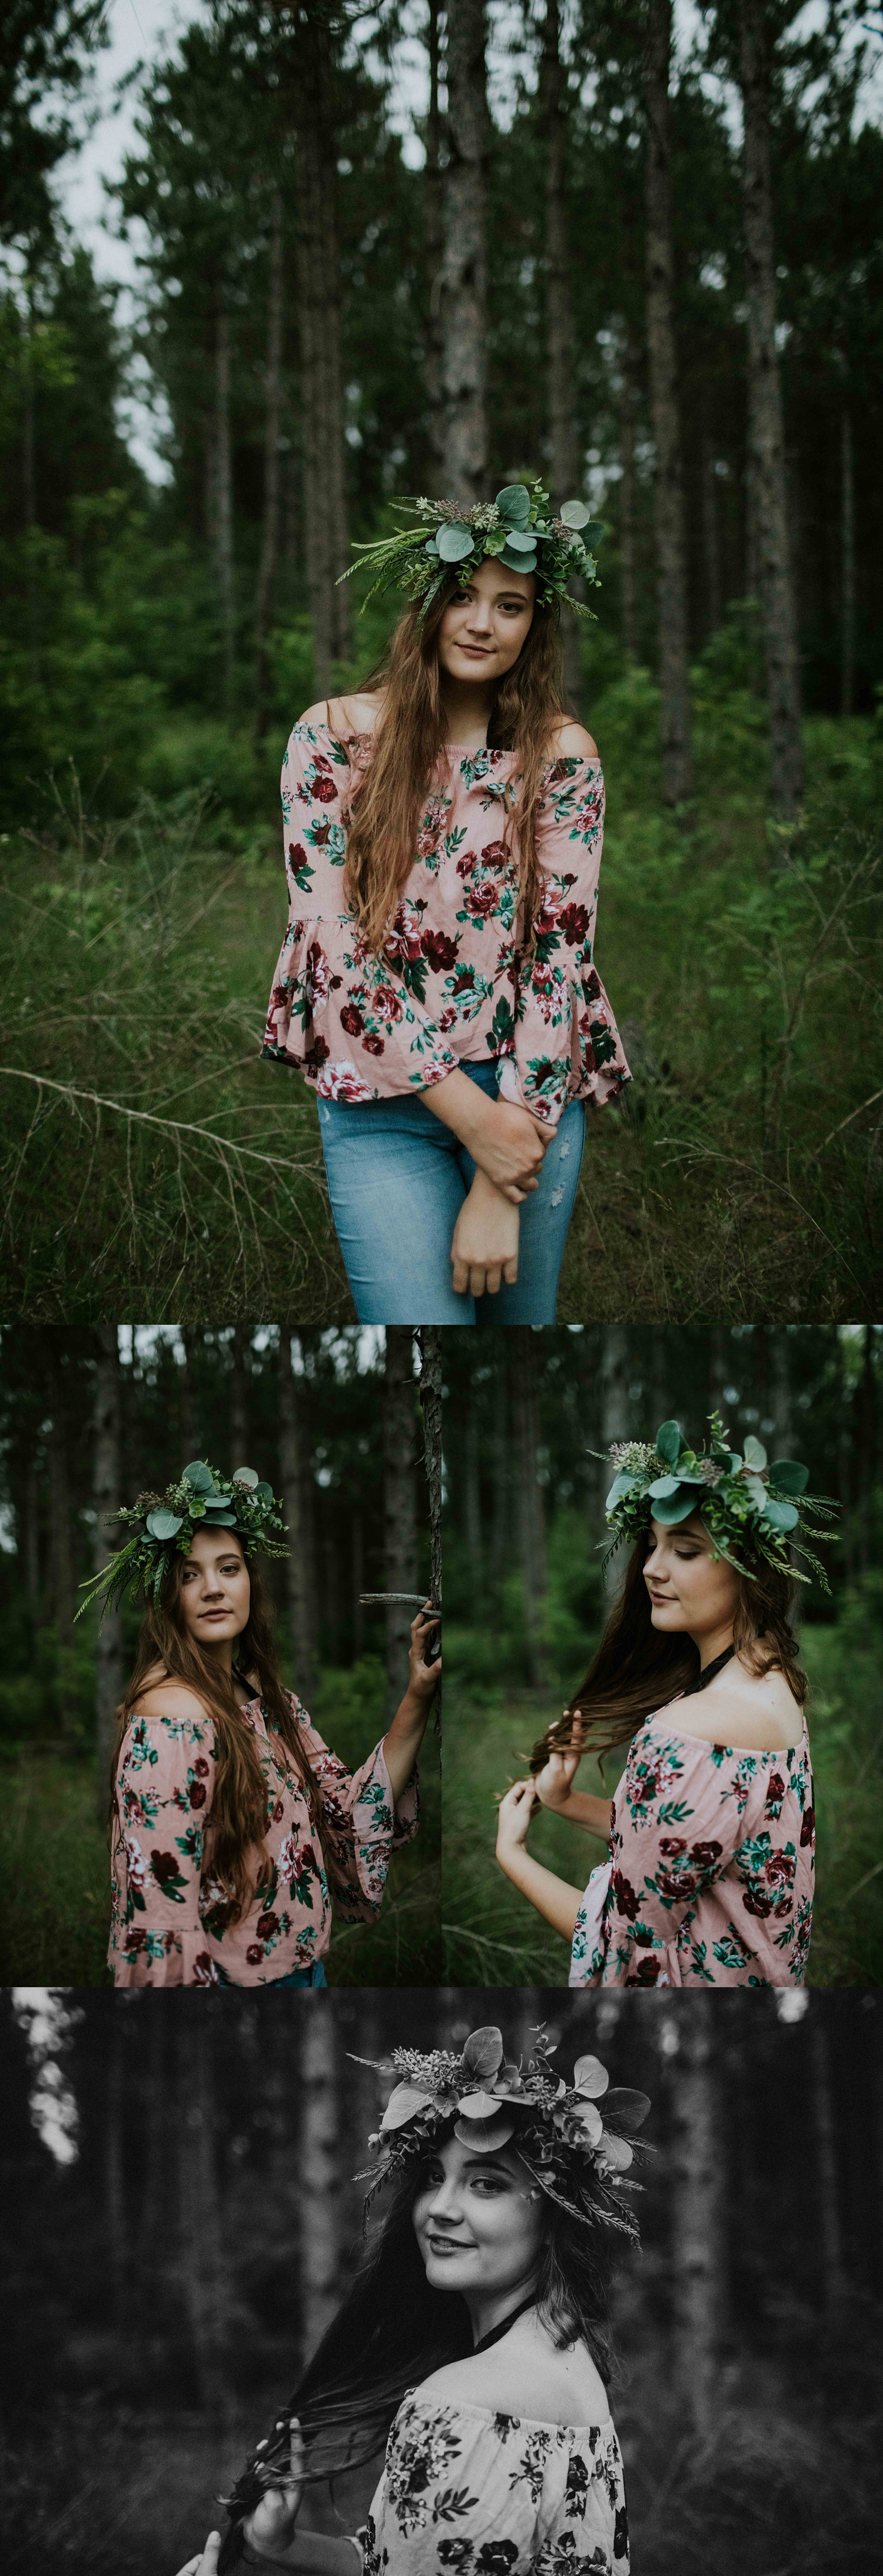 floral crown Senior Session Wisconsin Senior Photographer Wisconsin Rapids Madison Chloe Ann Photography